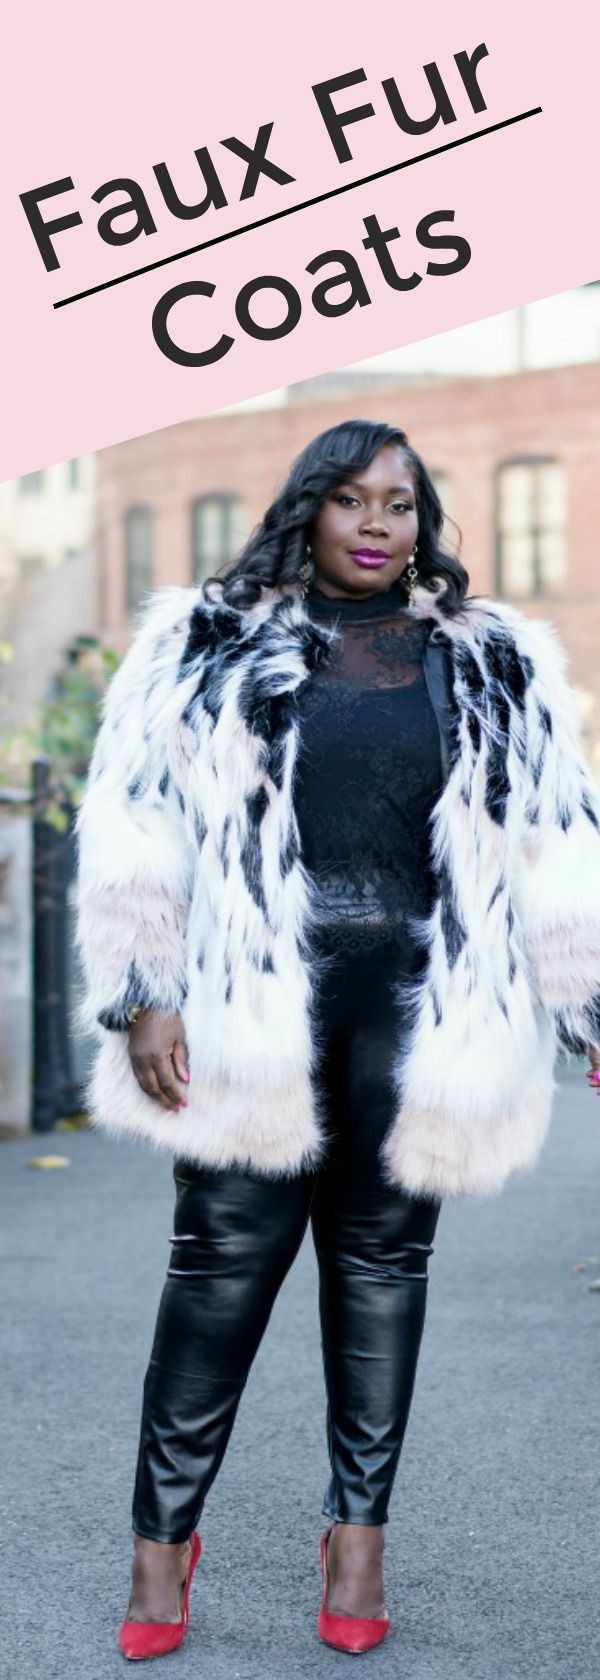 Outfit ideas with fur clothing, coat, fur